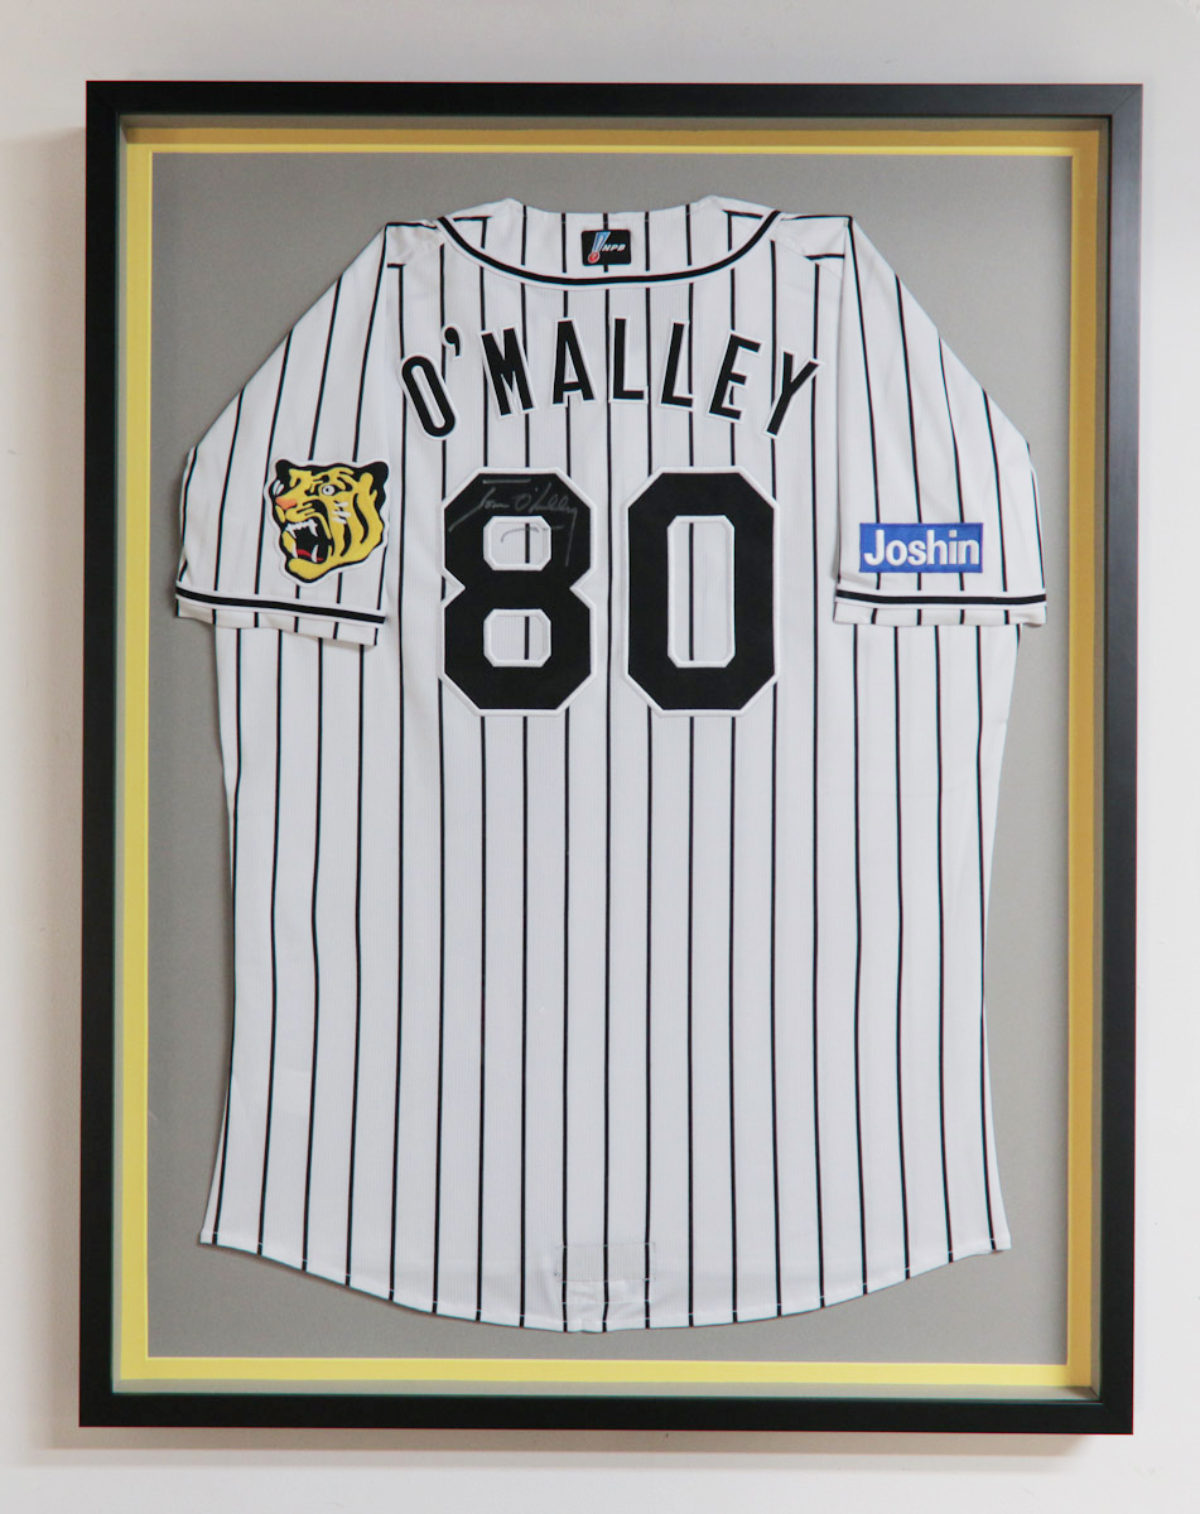 Jersey Shadowbox - Frame It Here